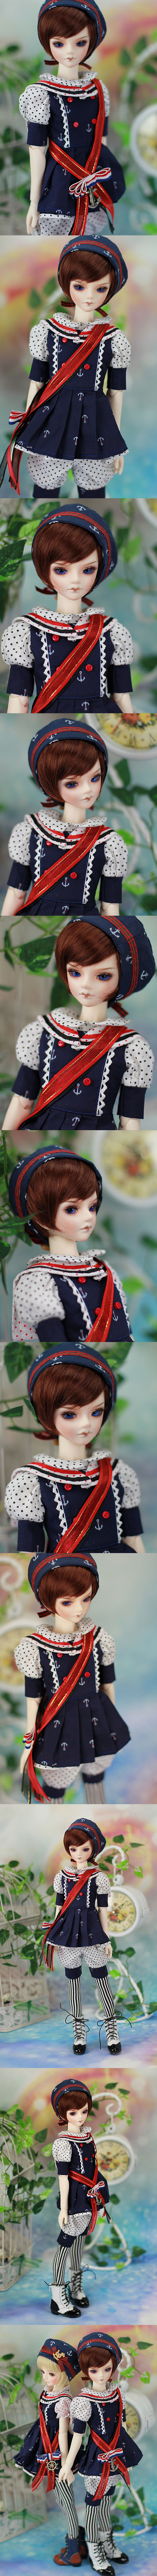 BJD Elvis 45.5cm Boy Ball-jointed doll